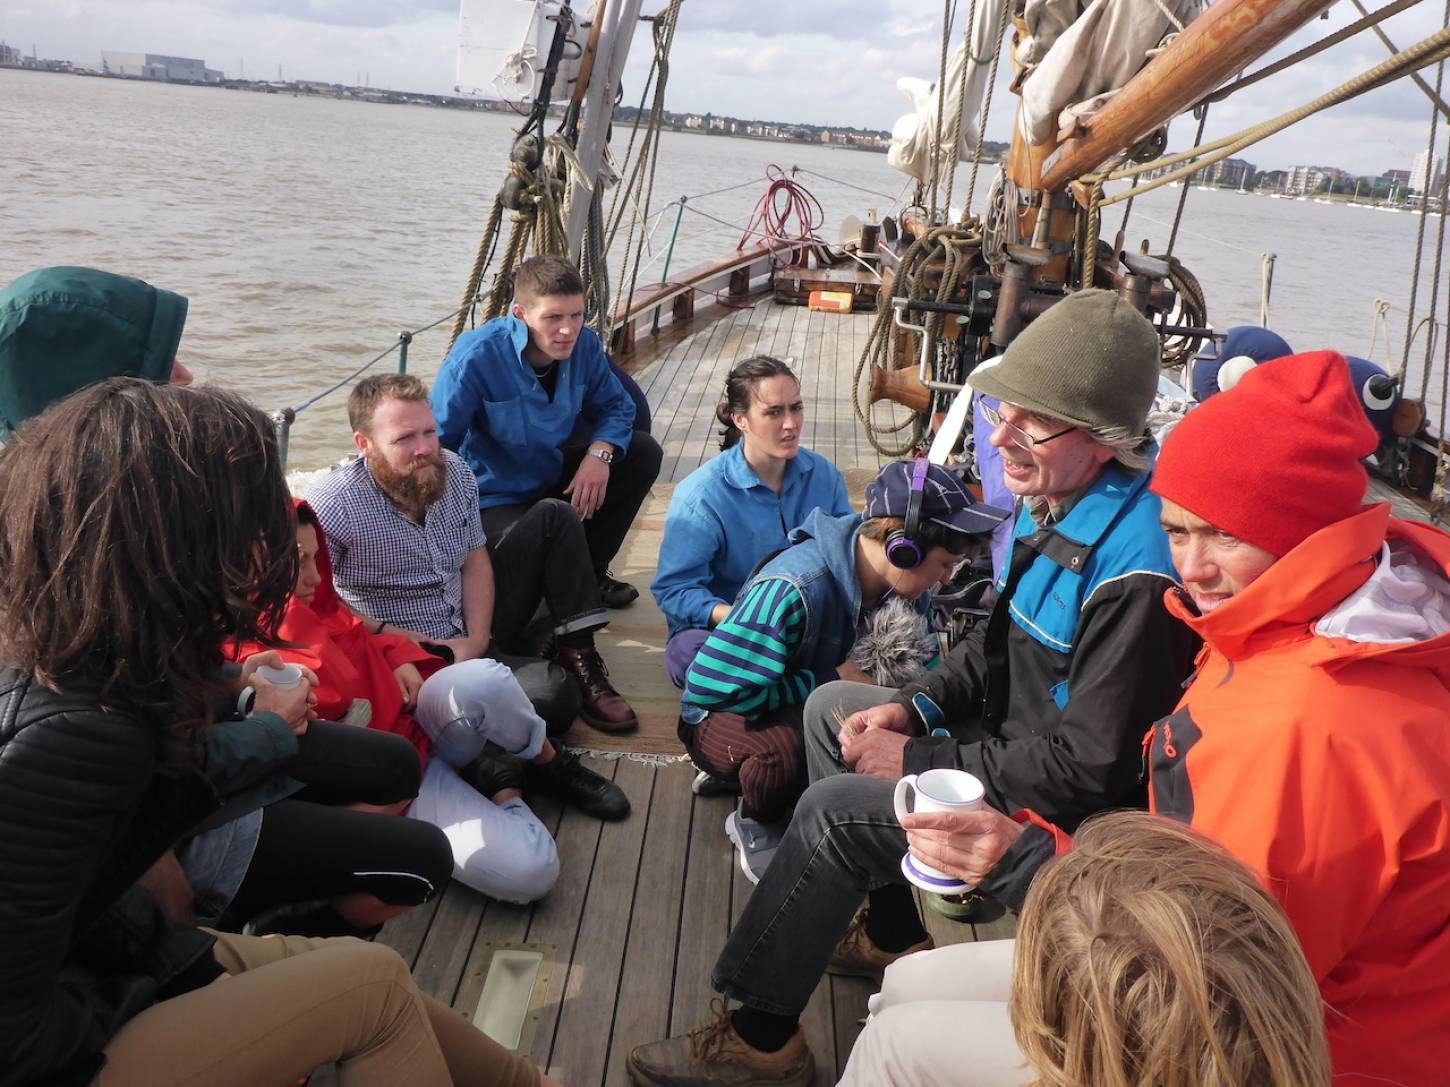 on Gravesend to Port of London leg of <a href='http://https://www.facebook.com/theseedjourney/' target='_blank'>Seed Journey</a> adventure aboard the <a href='http://www.classicboat.co.uk/articles/christiana-from-shipwreck-to-sailing/' target='_blank'>RS10 Christiana</a> 1895 Norwegian Colin Archer rescue boat - on board wheat chat - 4:55pm&nbsp;29<sup>th</sup>&nbsp;Sep.&nbsp;'16